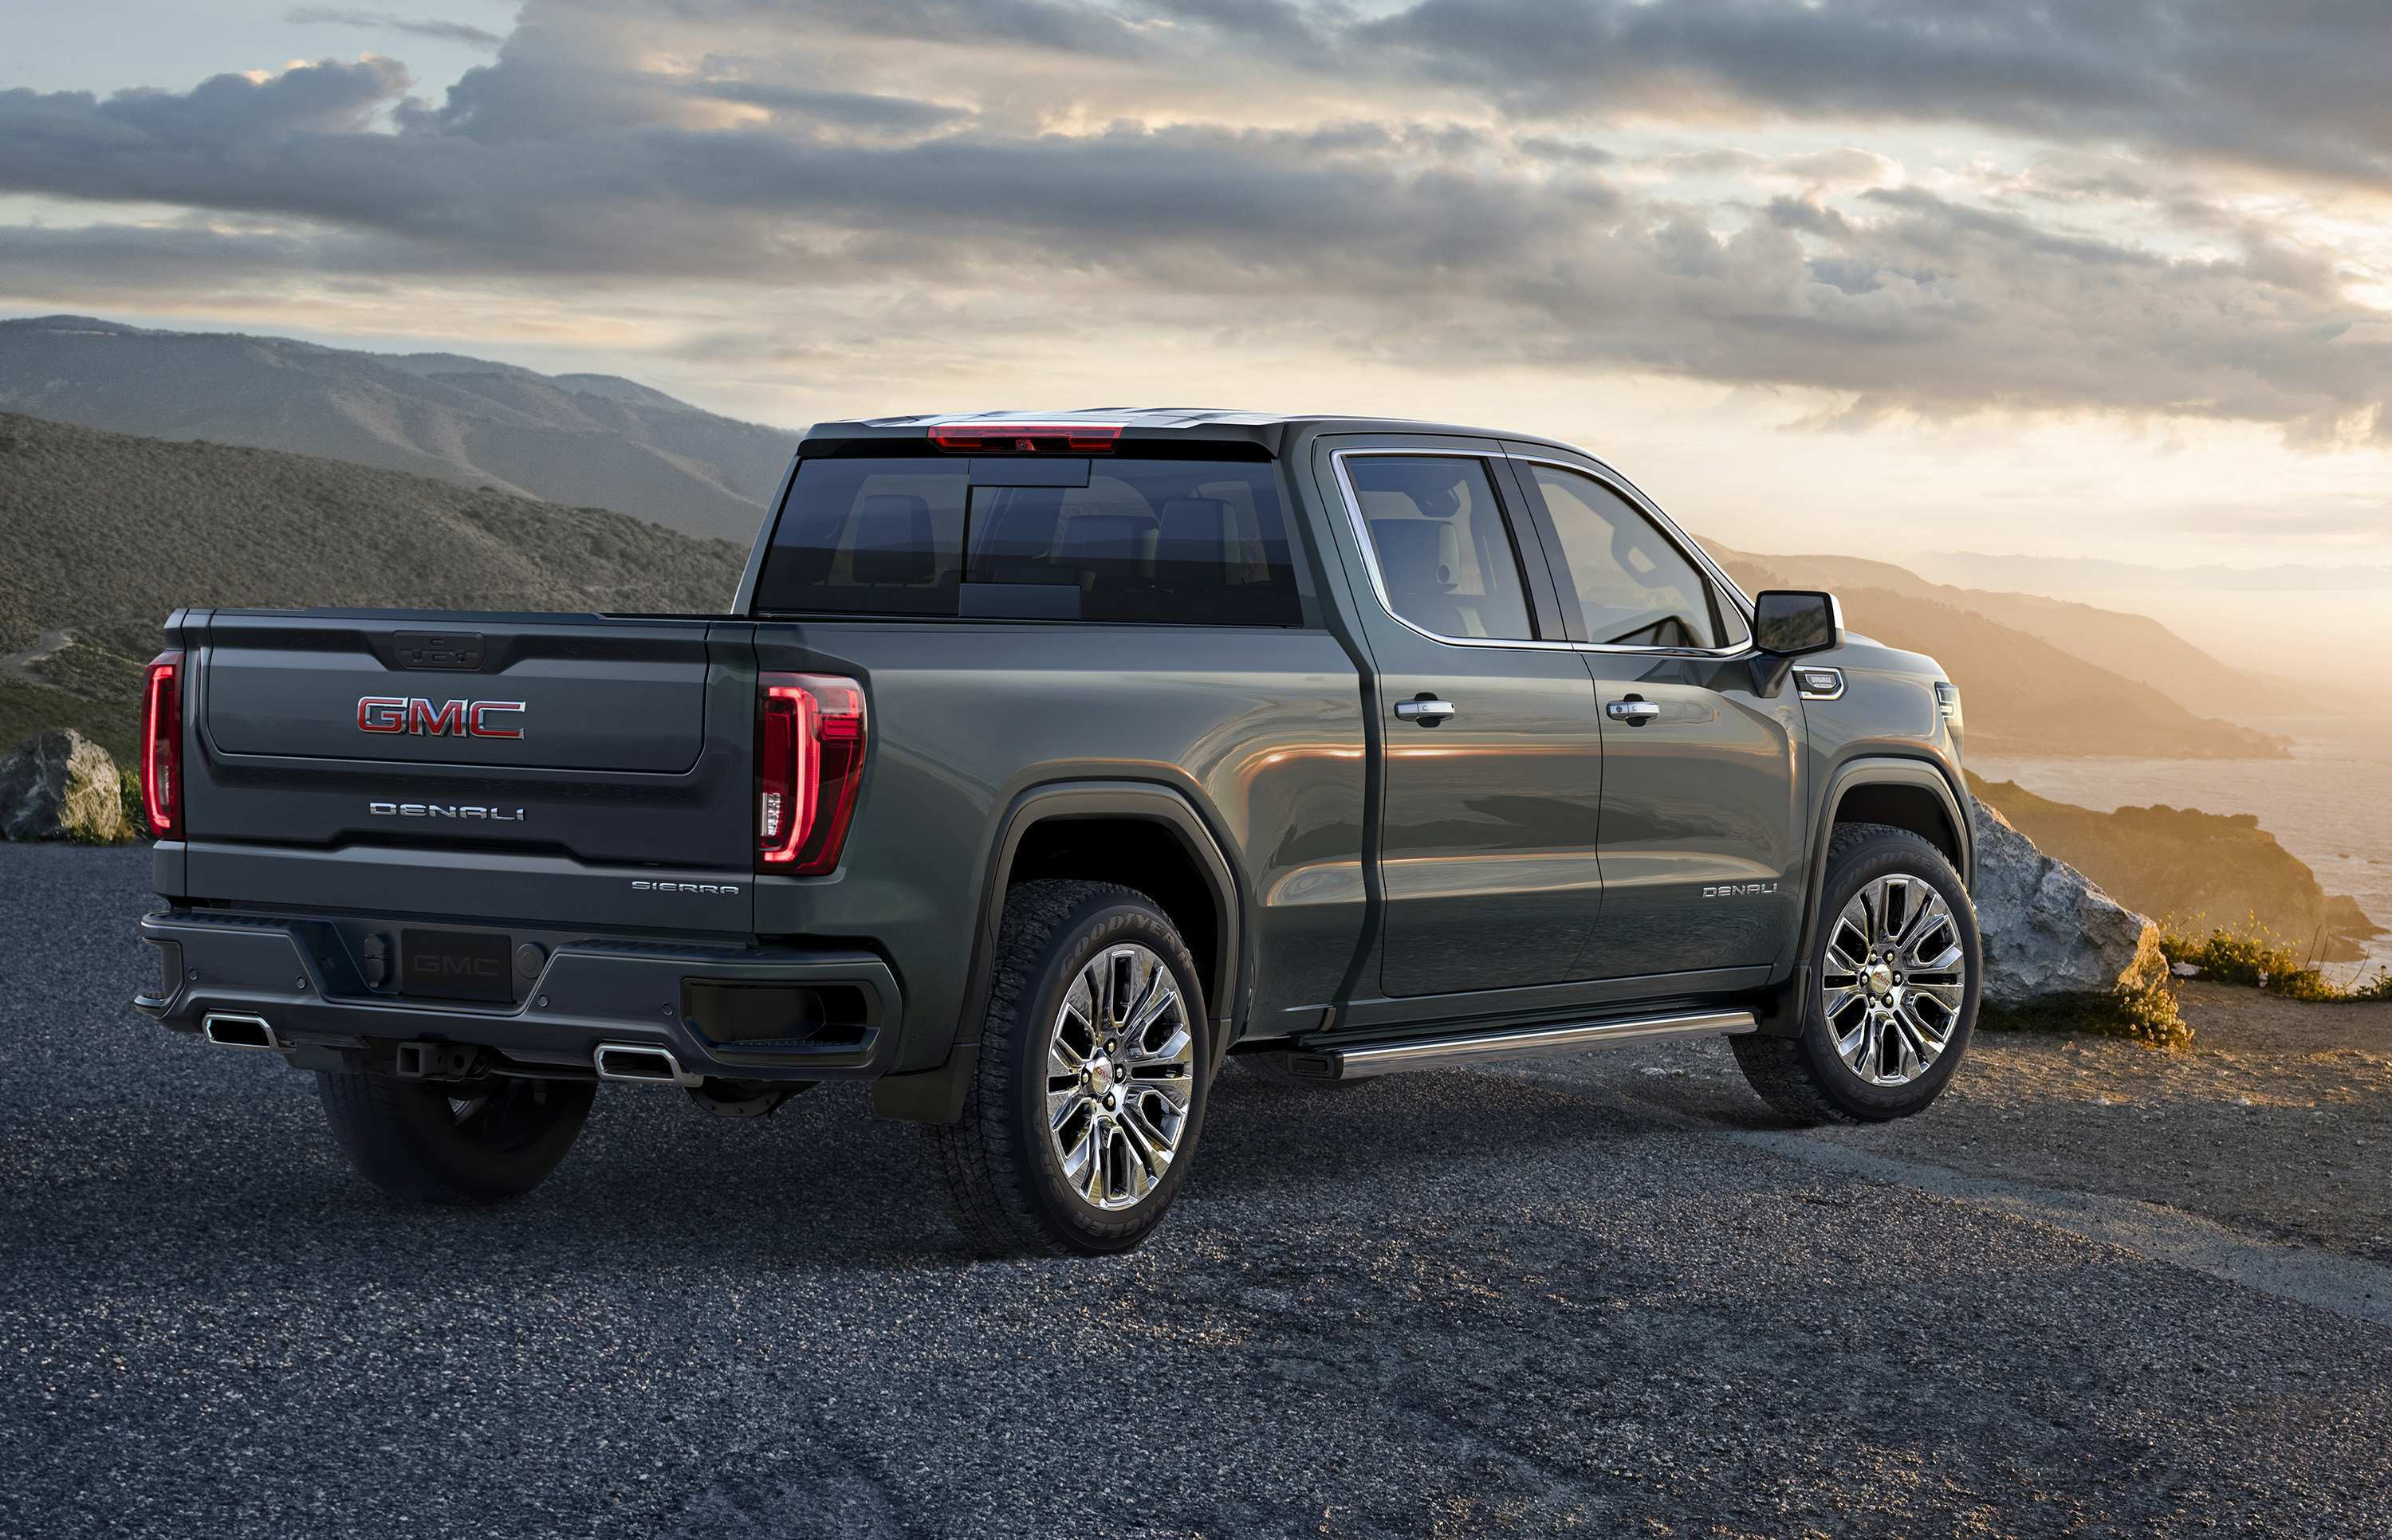 88 Concept of 2019 Gmc Pickup Tailgate Wallpaper with 2019 Gmc Pickup Tailgate